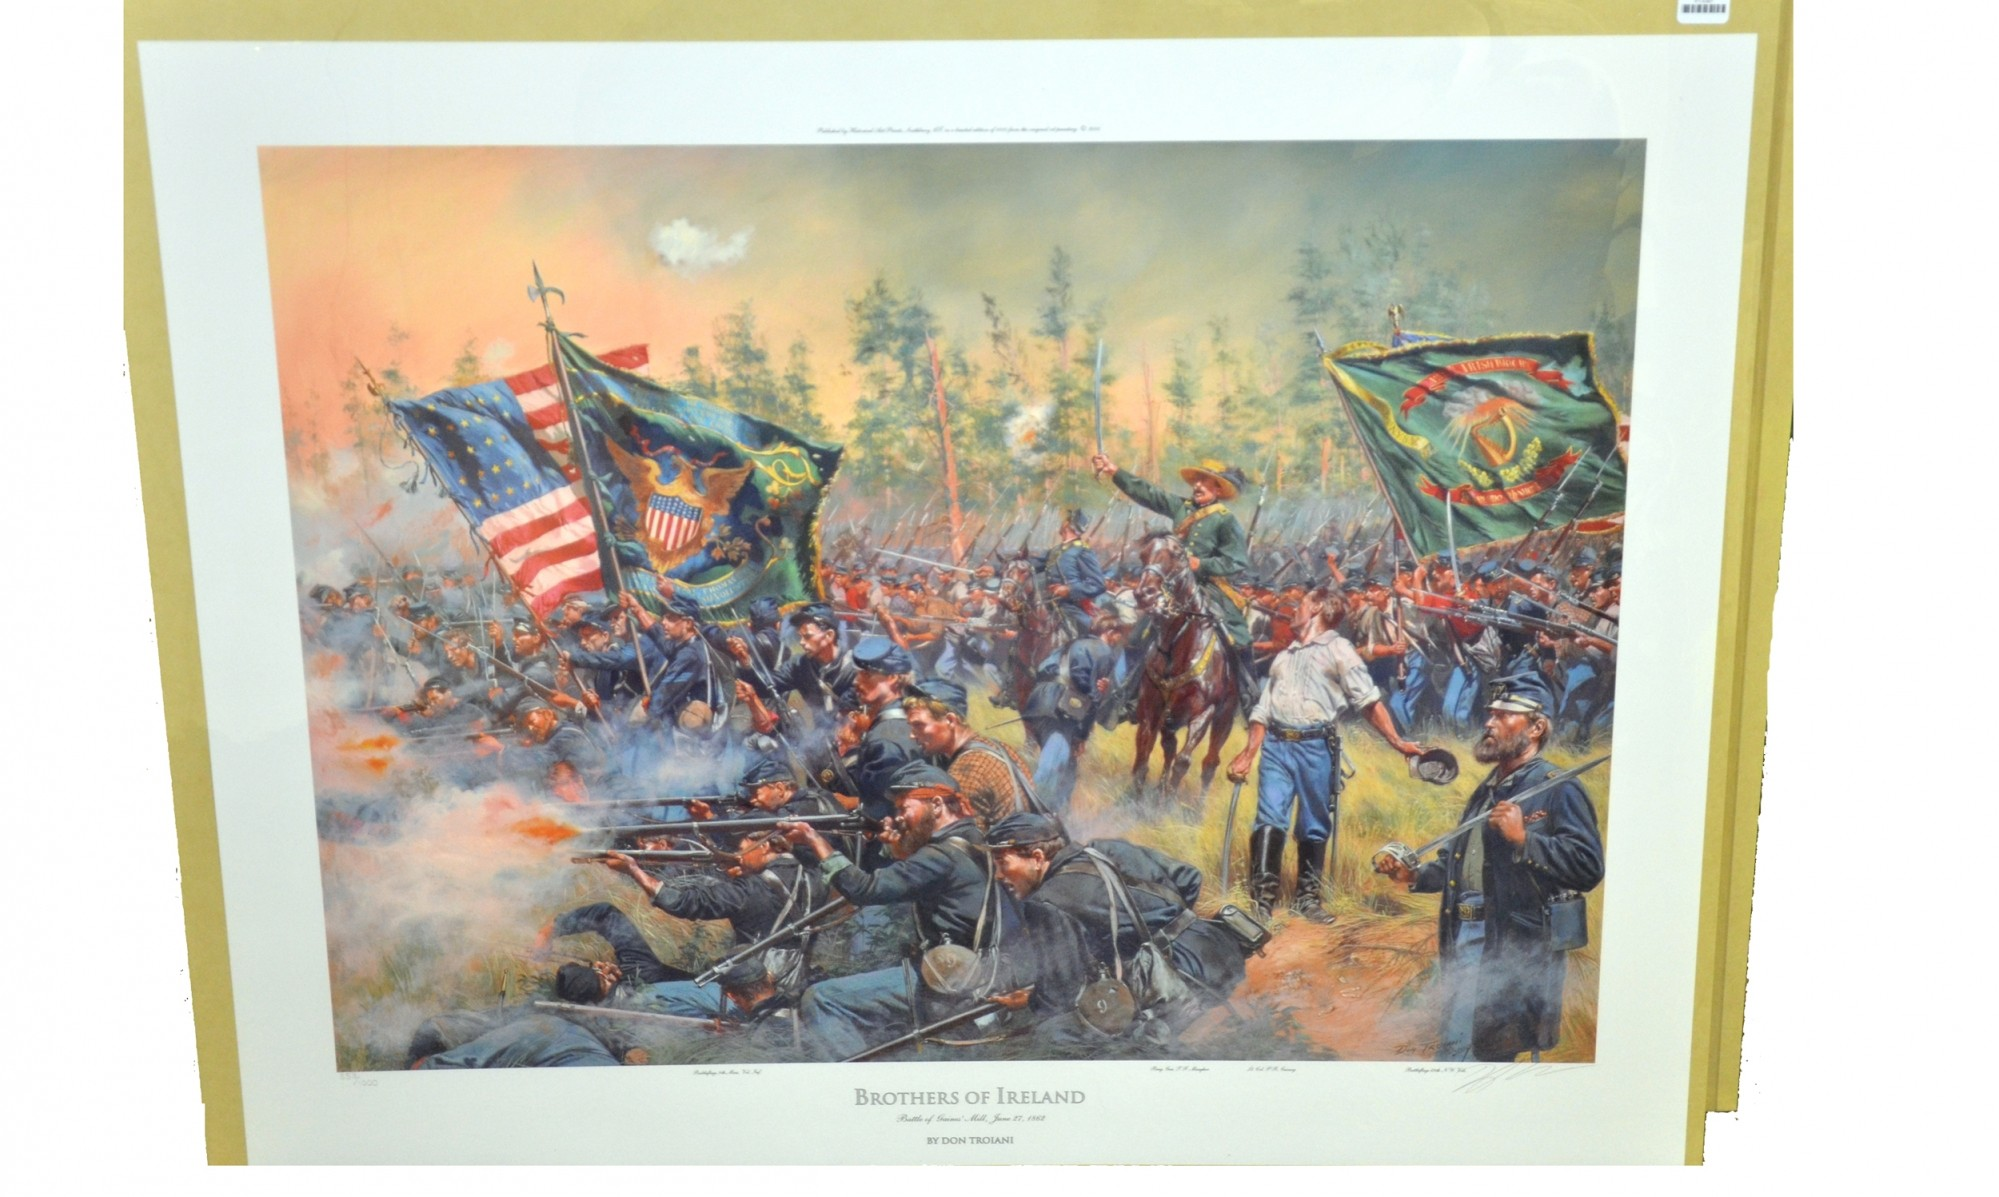 BROTHERS OF IRELAND, BATTLE OF GAINES' MILL, JUNE 27, 1862 – DON TROIANI